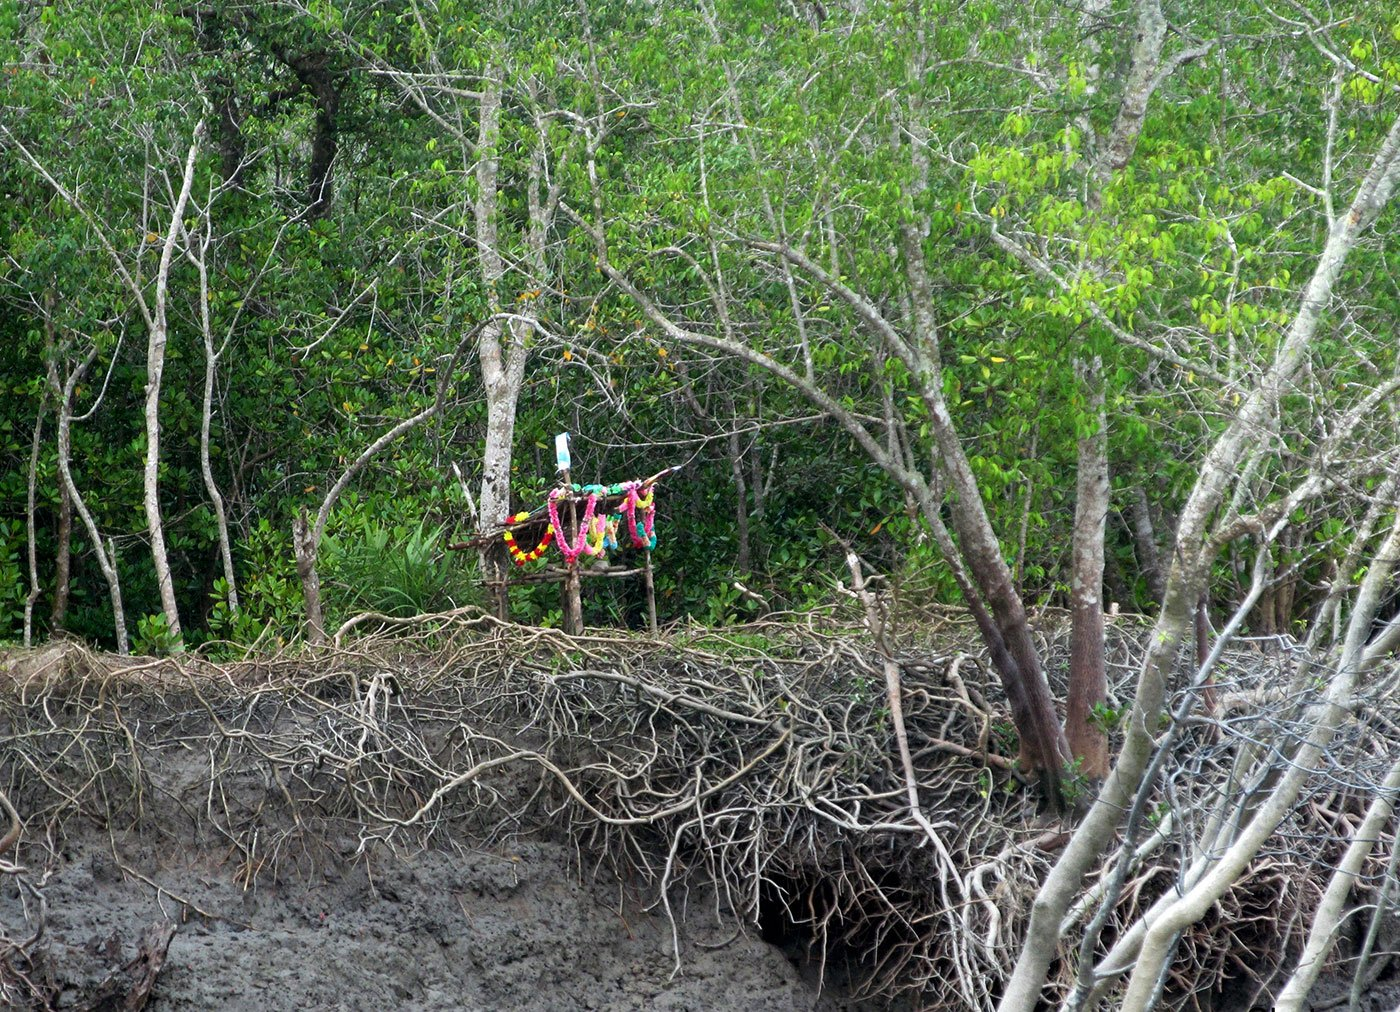 12-Bonbibi-shack,-Sundarban(Crop)-SB-Ma Bonbibi, Mother to Humans and Tigers.jpg